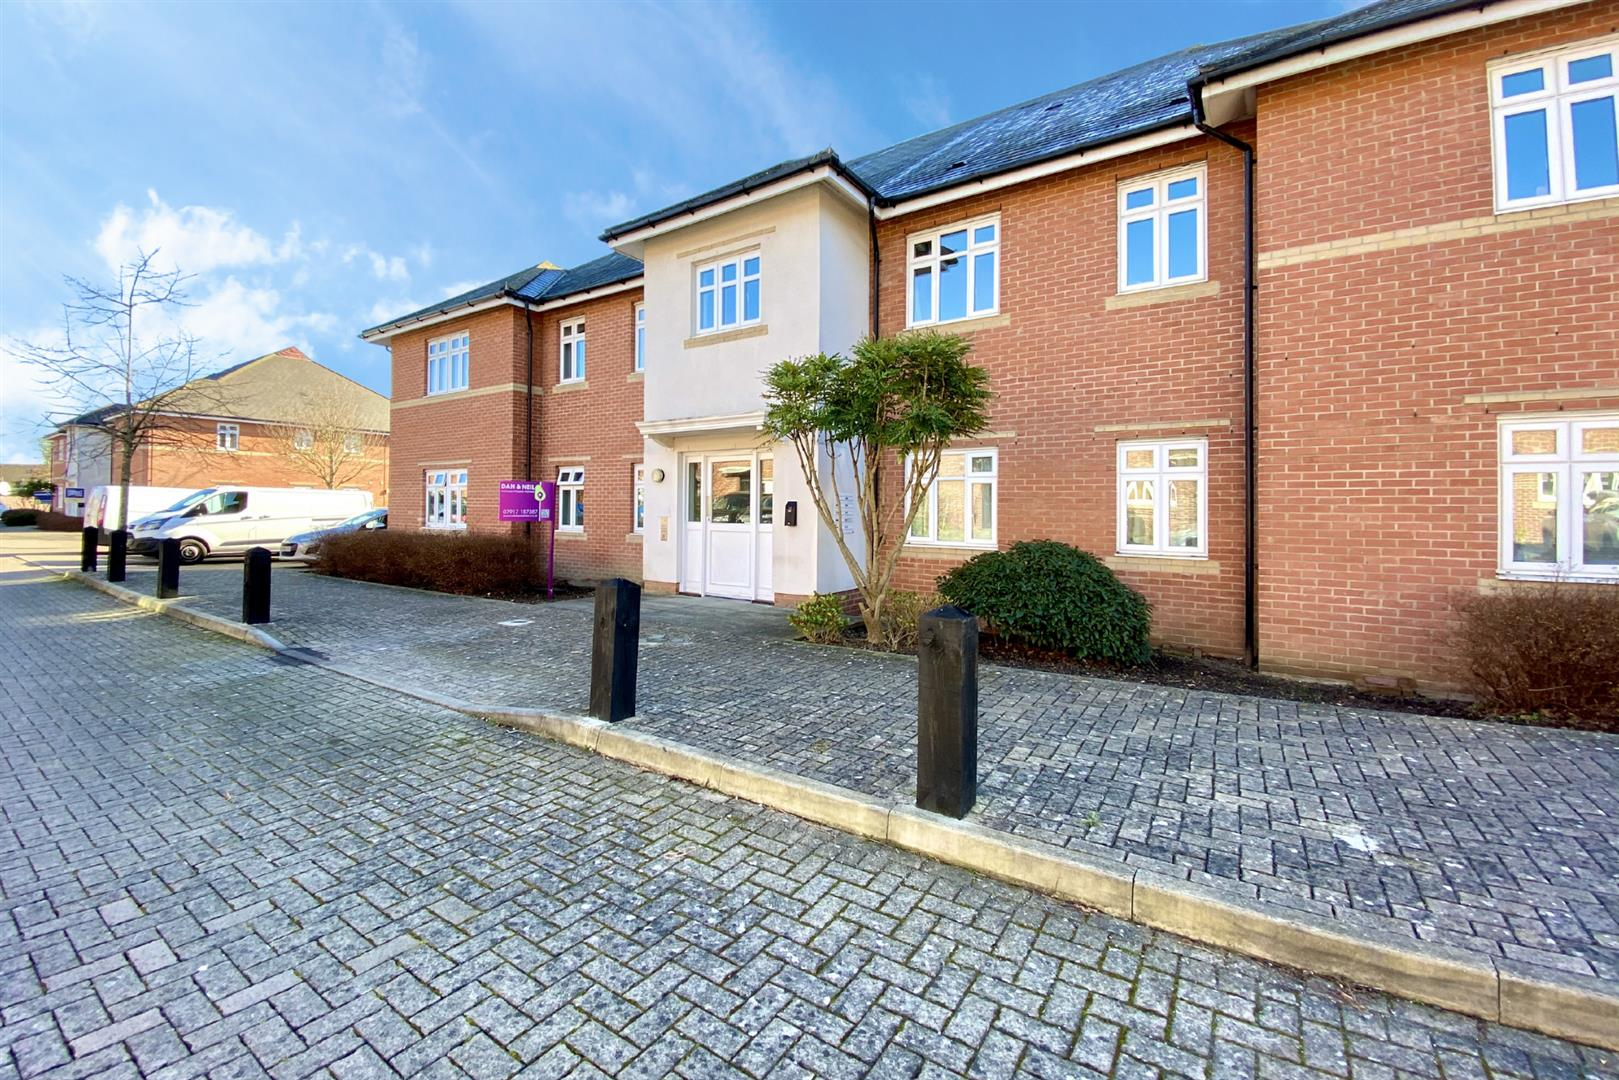 2 bed flat for sale in Lower Earley, RG6